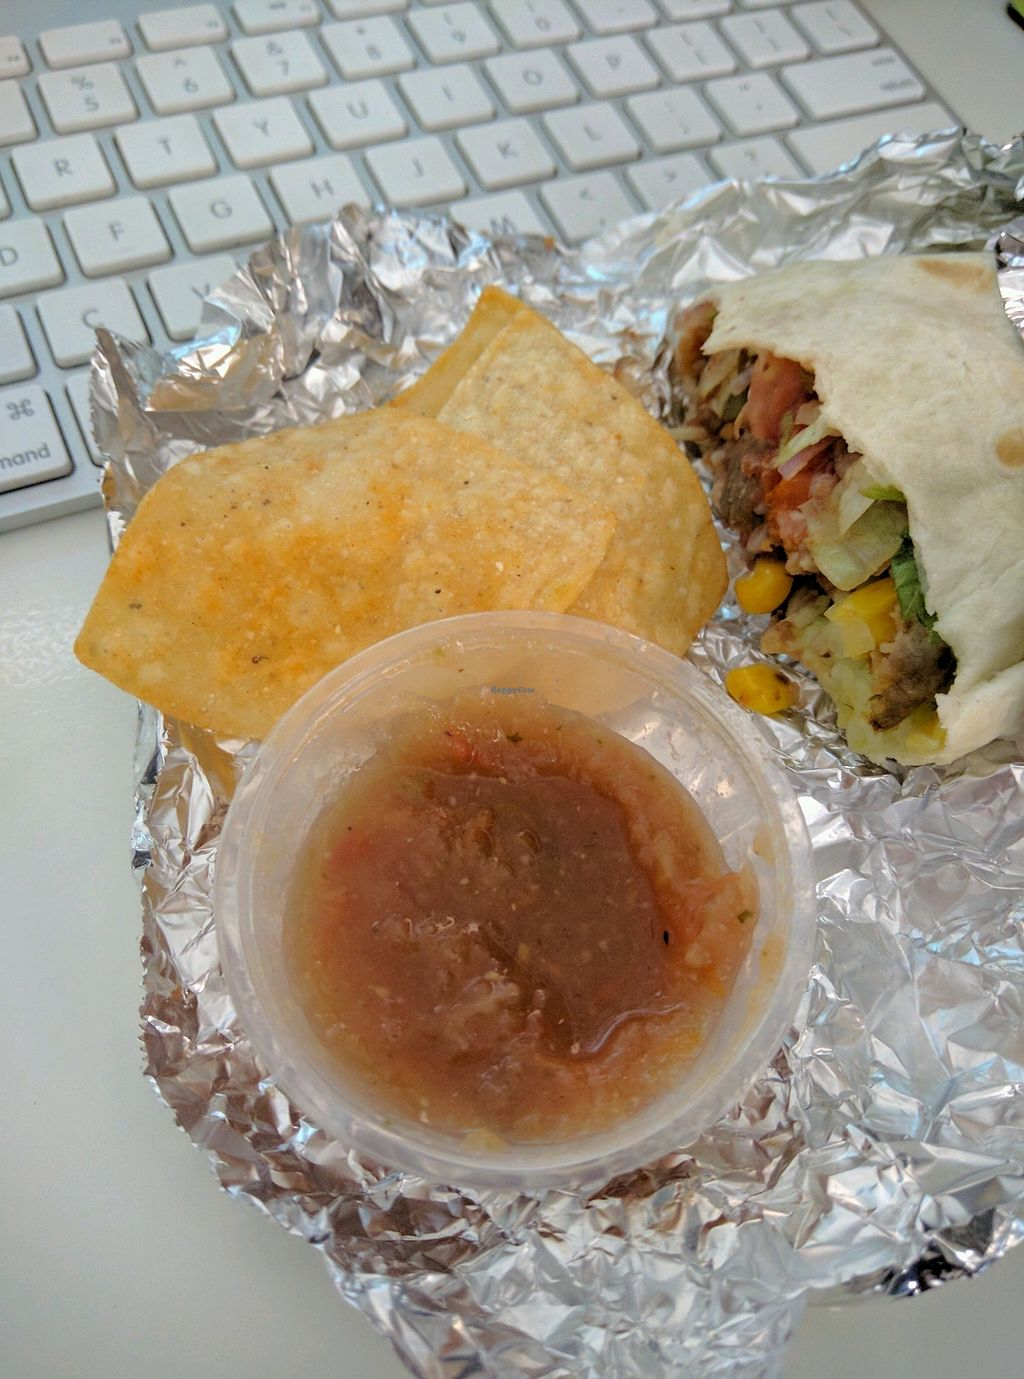 """Photo of CLOSED: Habanero - Queensbay Mall  by <a href=""""/members/profile/Summer_Tan"""">Summer_Tan</a> <br/>Nacho Chips and Salsa RM11 (Vegetable Burrito) + RM4.50 (make it a meal with Nacho Chips and a Soft Drink) <br/> January 31, 2018  - <a href='/contact/abuse/image/52340/353256'>Report</a>"""